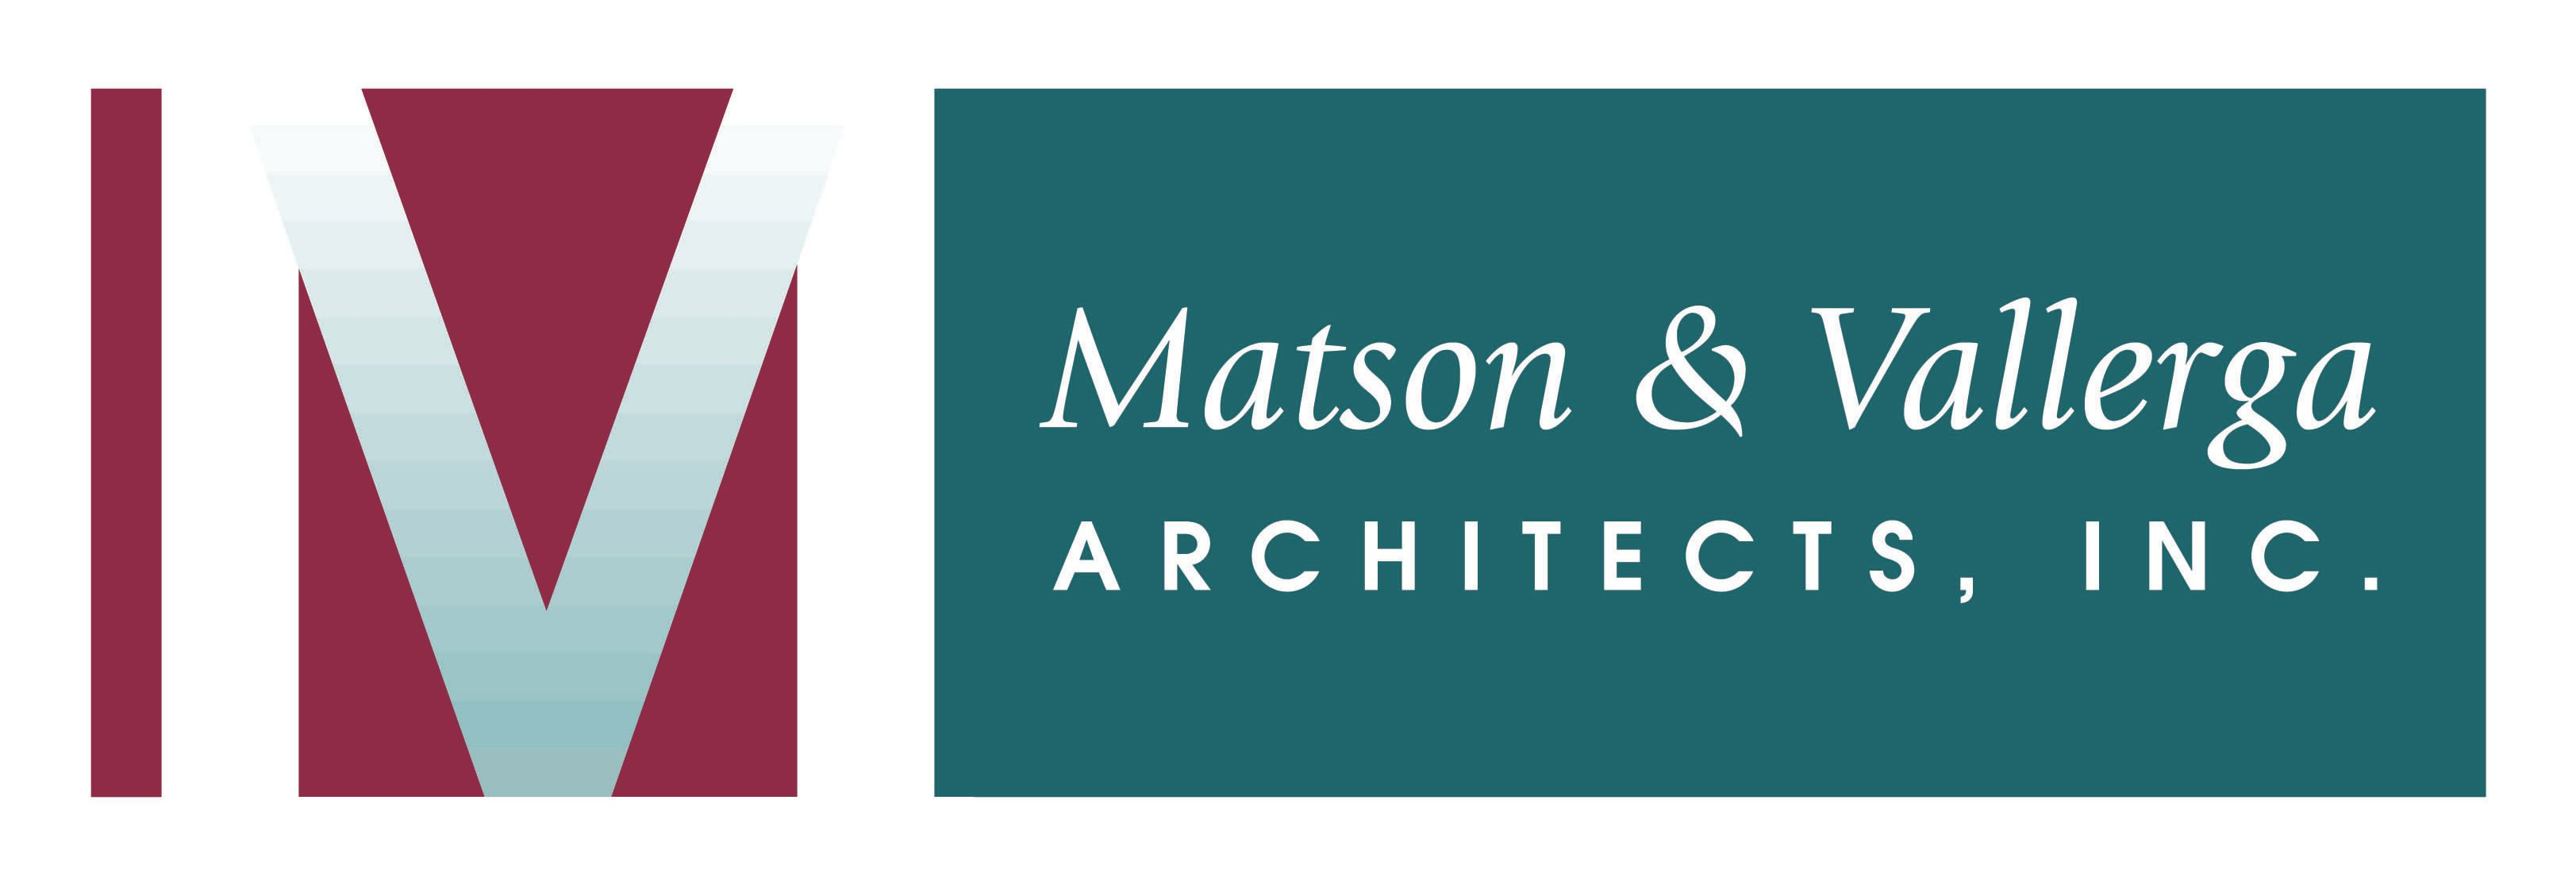 MATSON & VALLERGA ARCHITECTS, INC